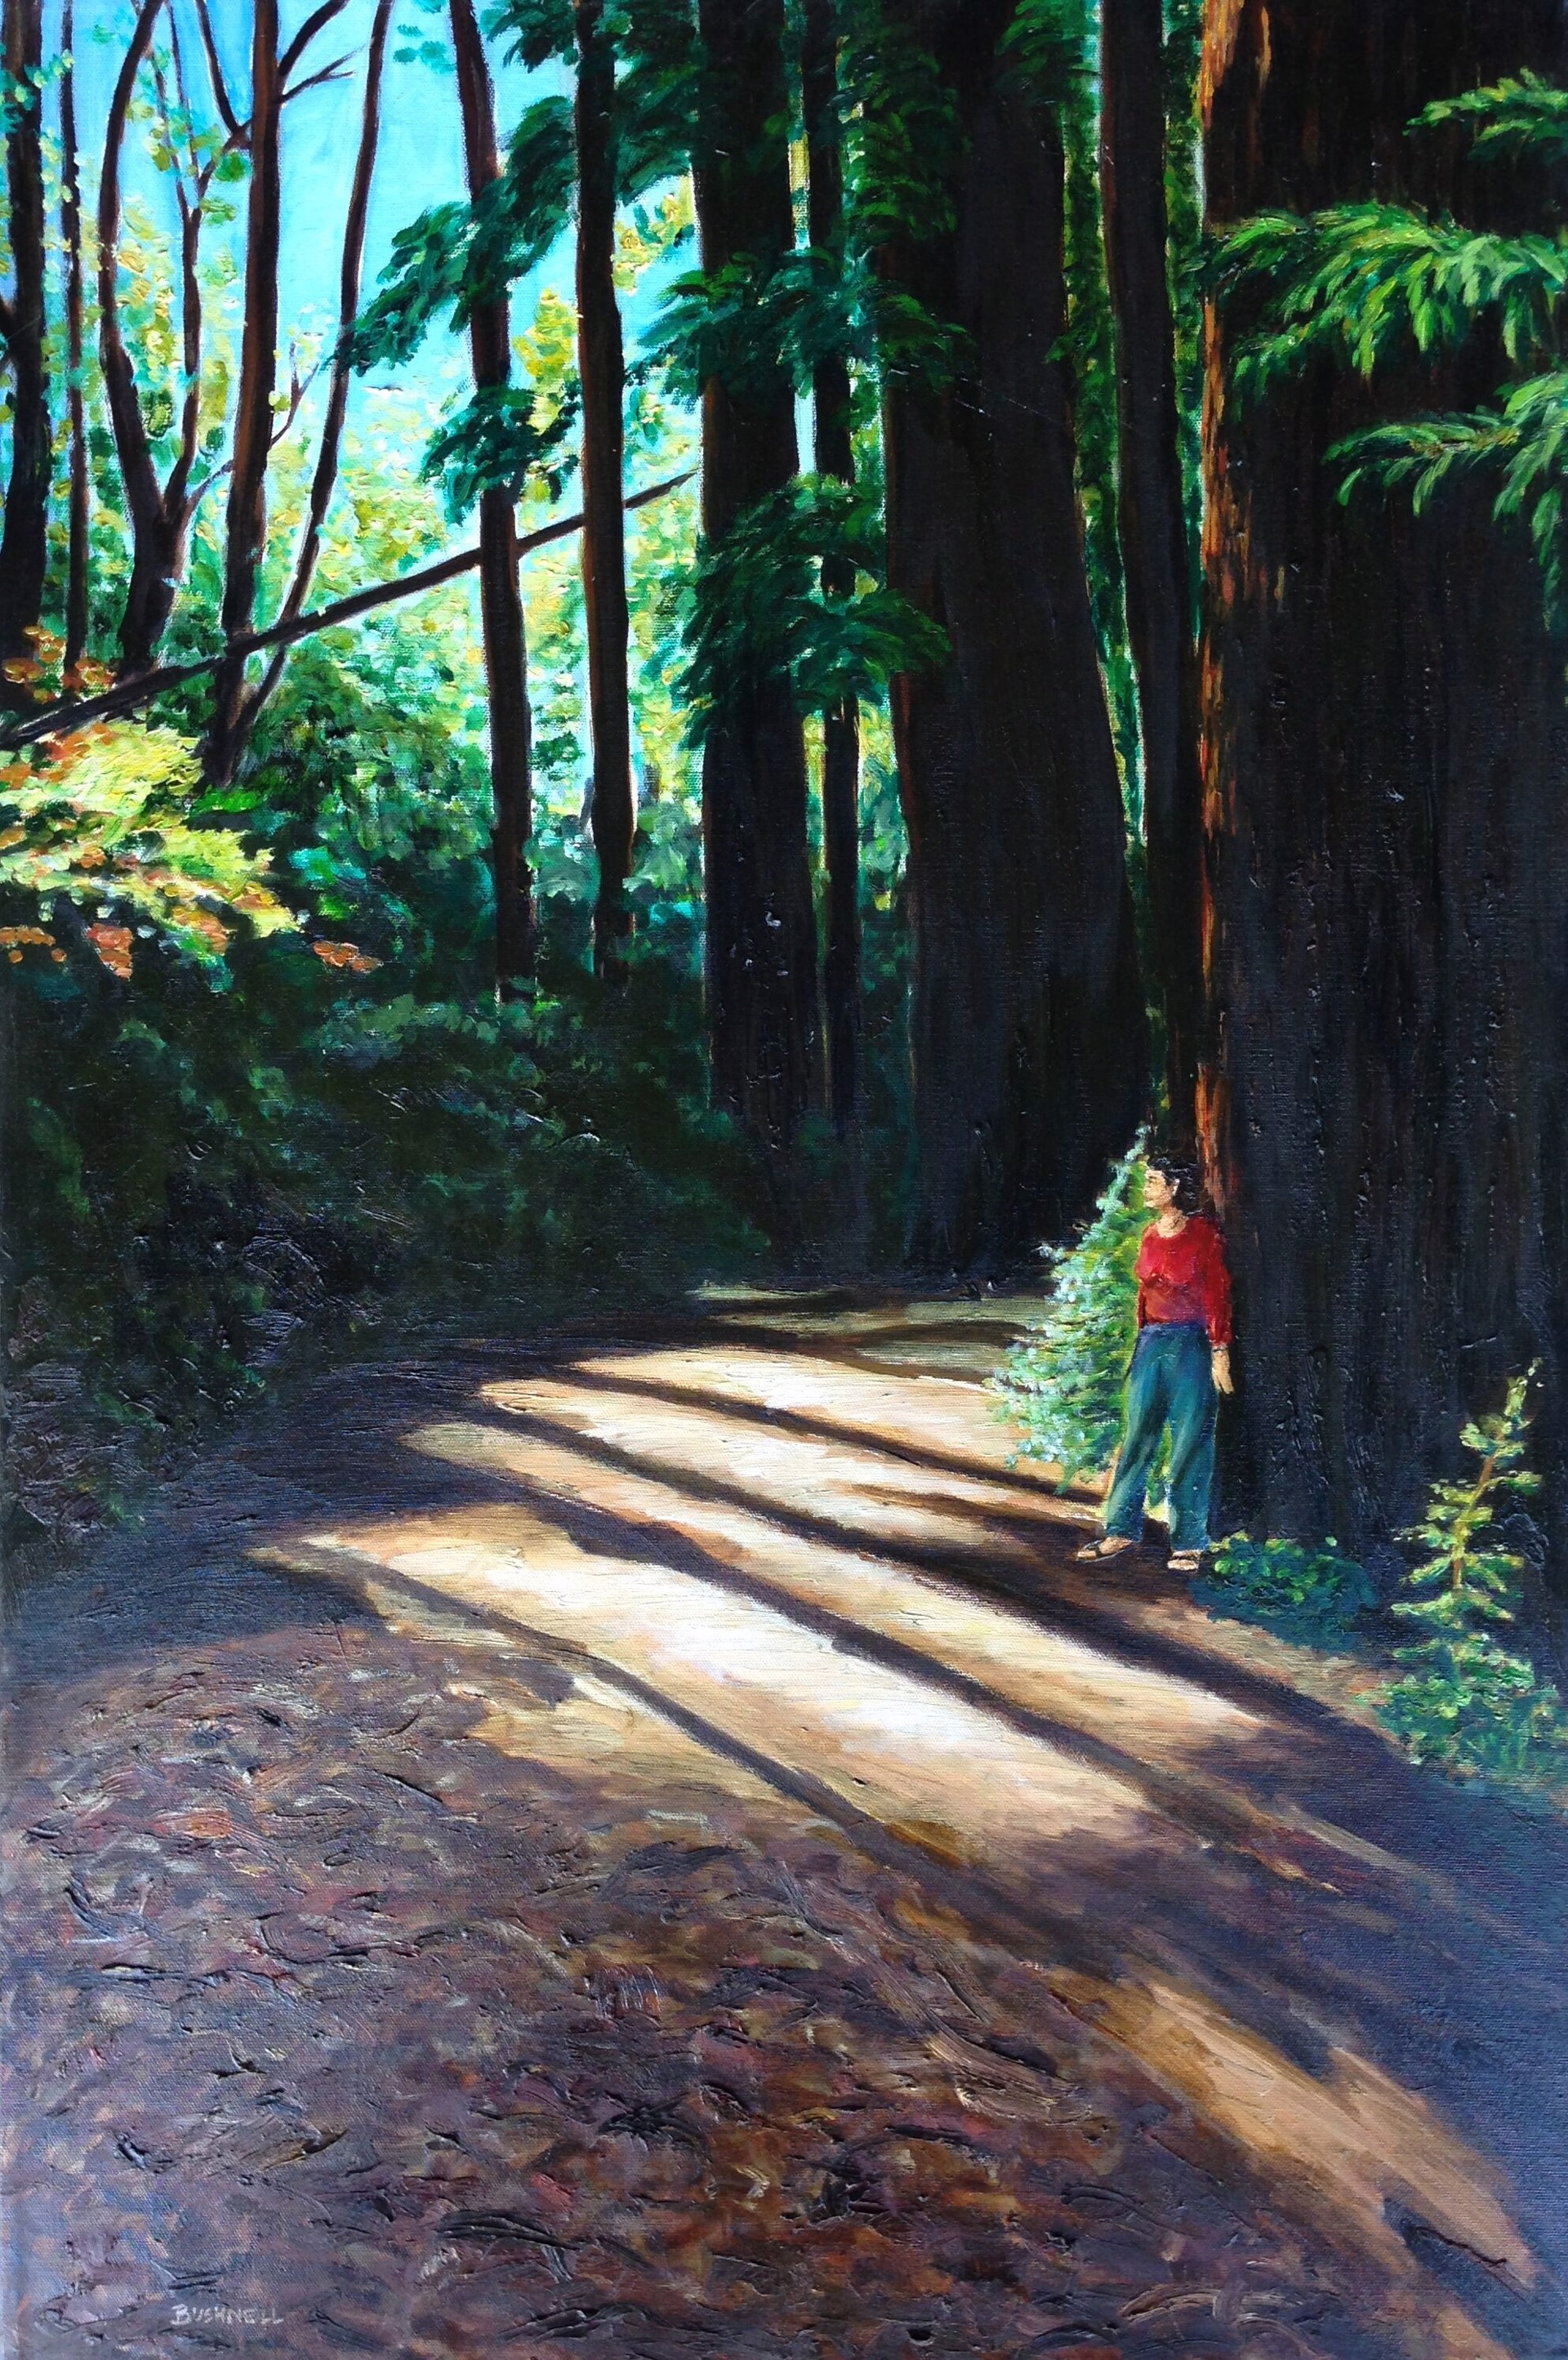 In The Forest by Brent Bushnell